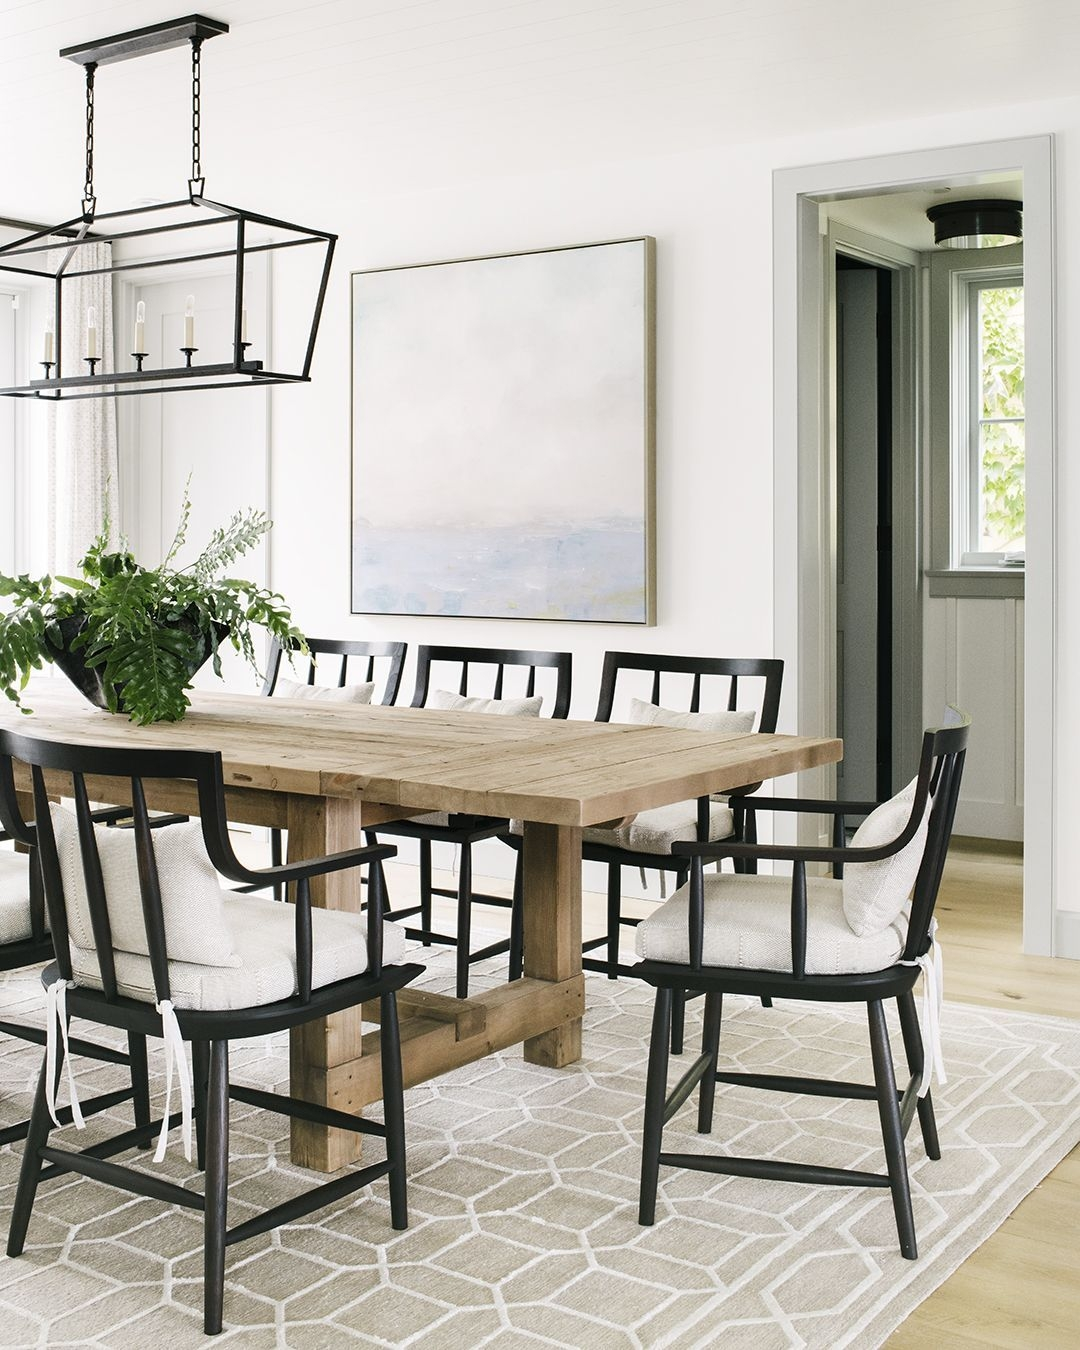 Relaxing Dining Tables Design Ideas38